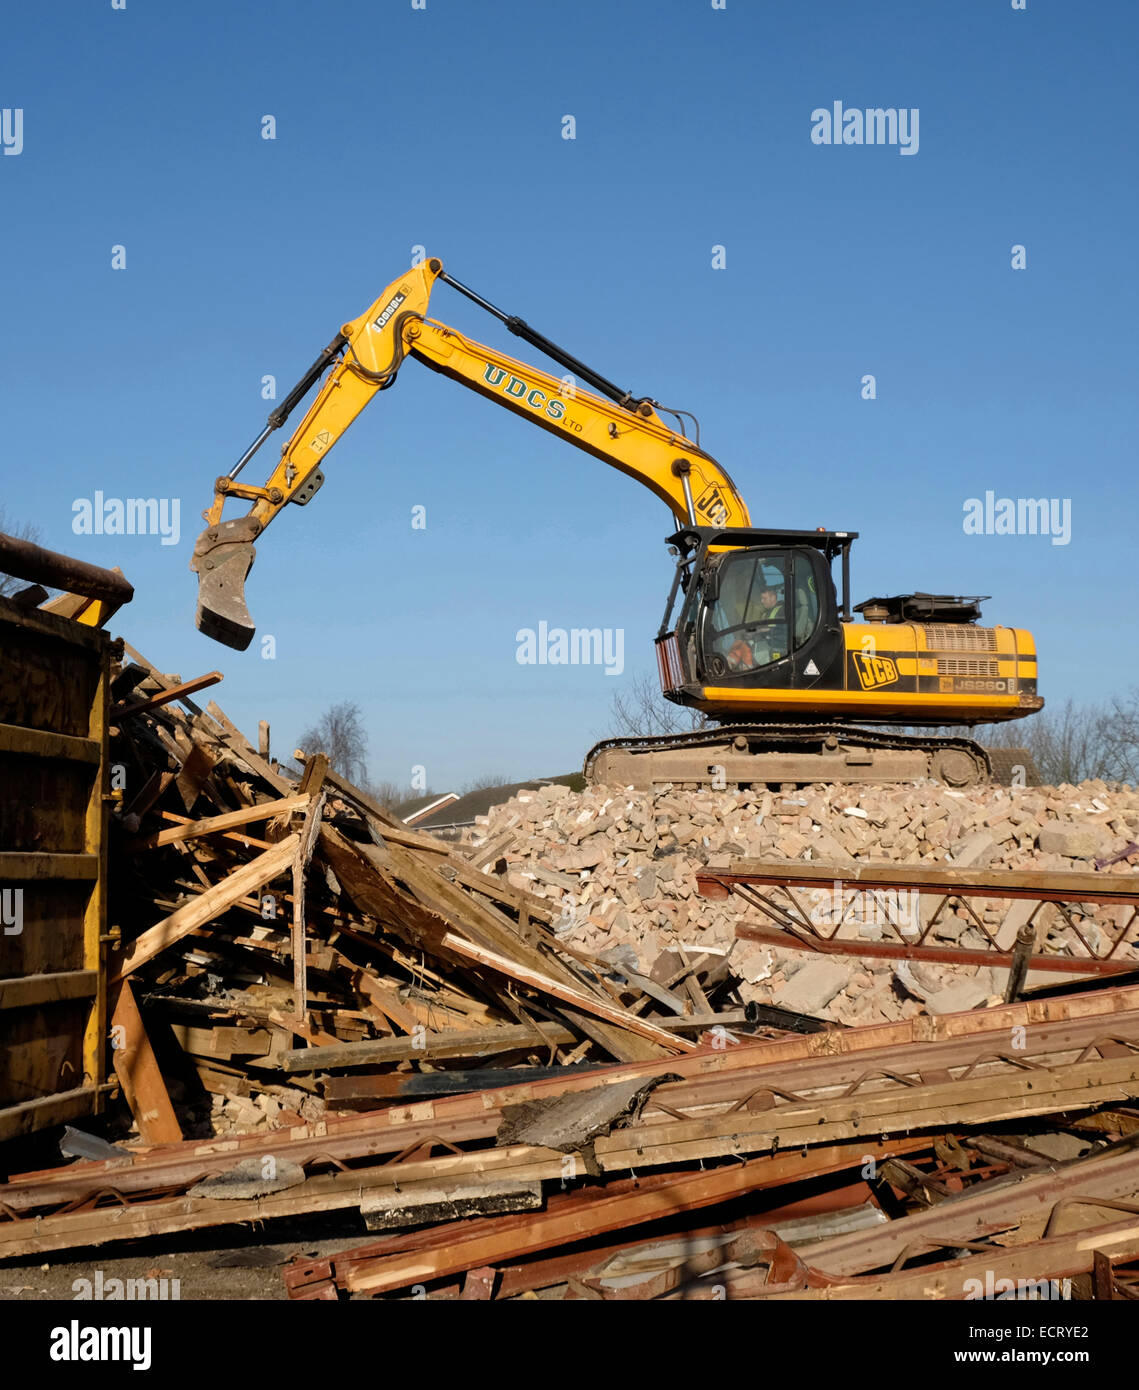 Heavy plant machinery removing rubble from a demolished house, Grantham, Lincolnshire, England, UK - Stock Image